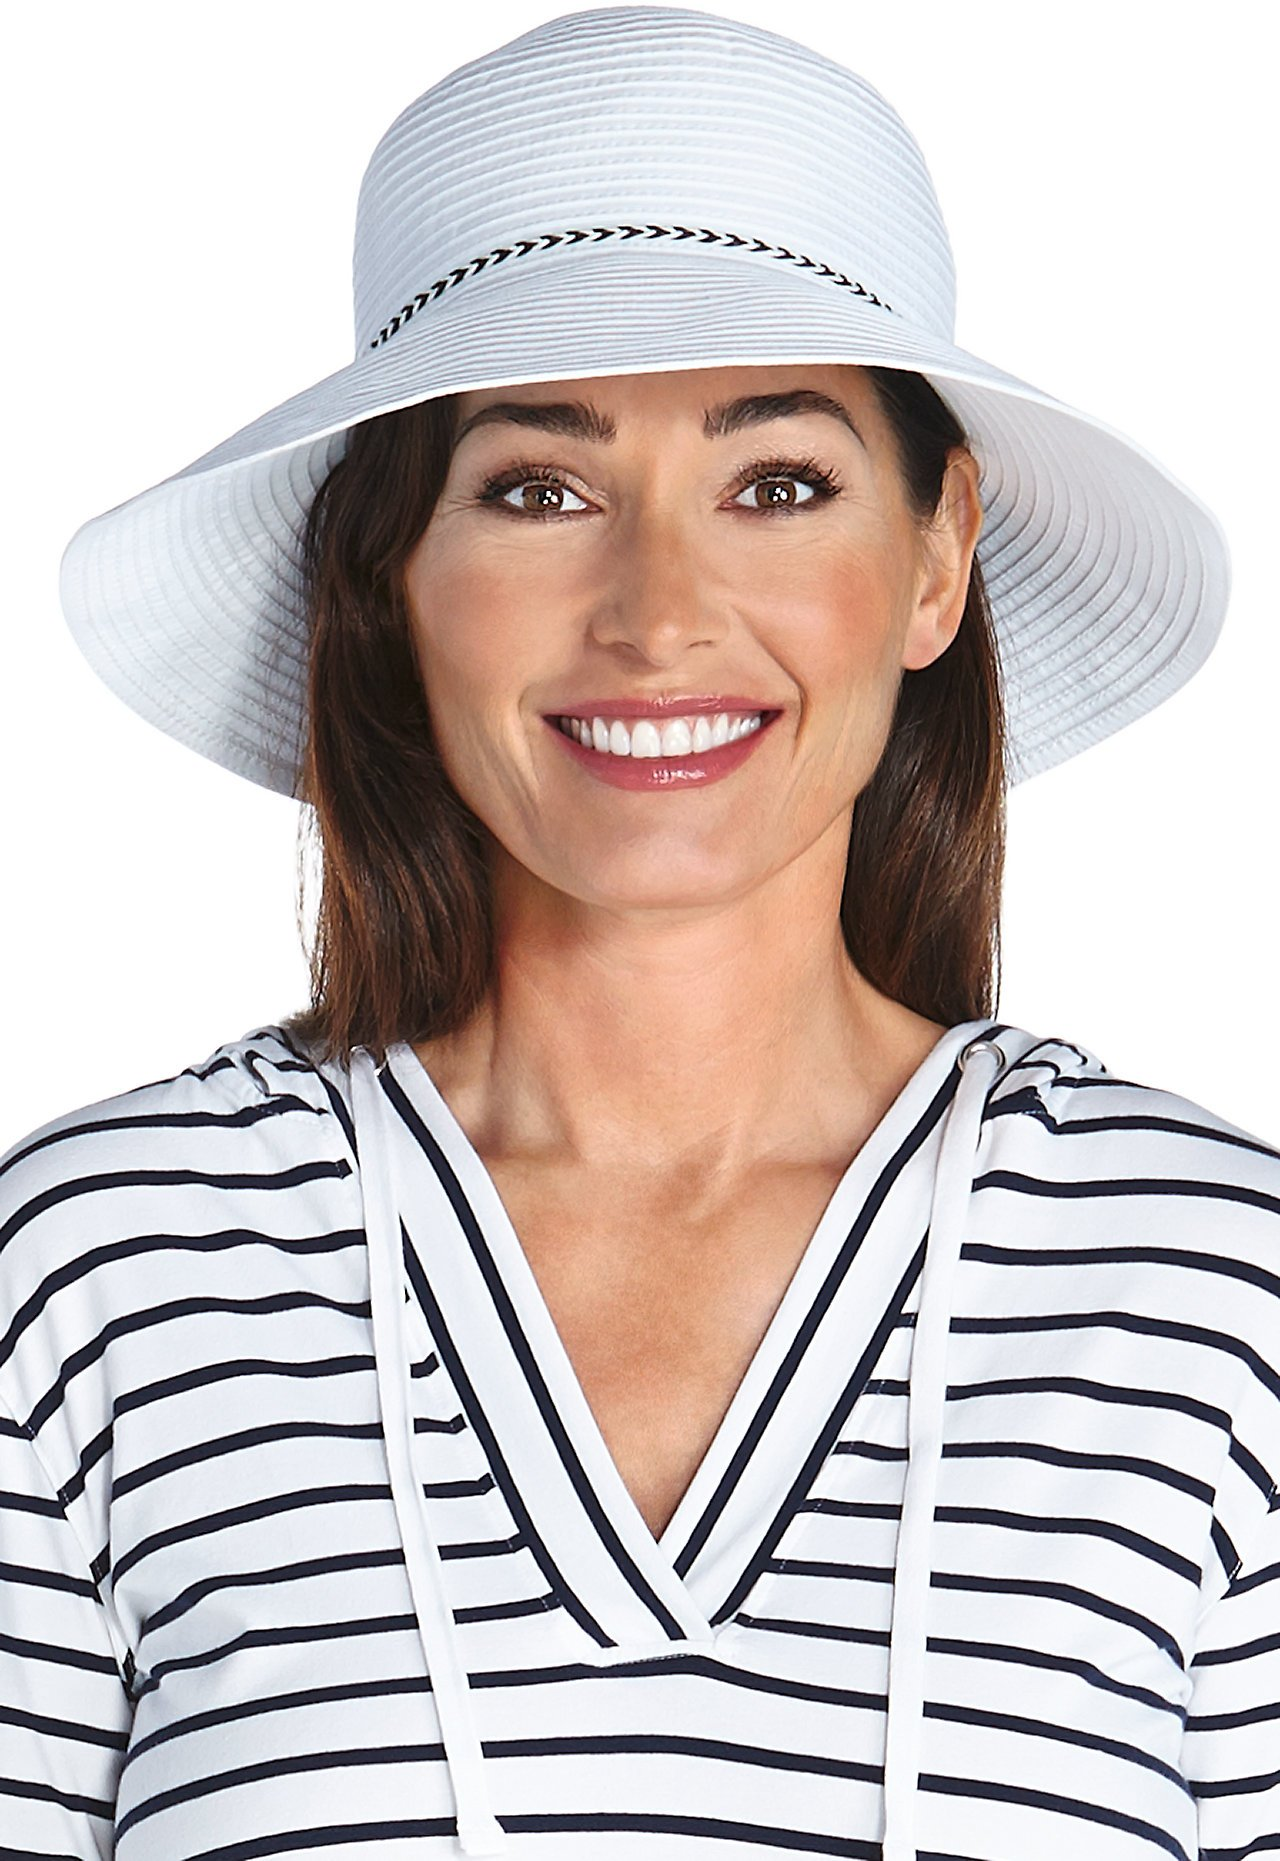 Coolibar UPF 50+ Women's Audrey Ribbon Bucket Hat - Sun Protective (One Size- White) by Coolibar